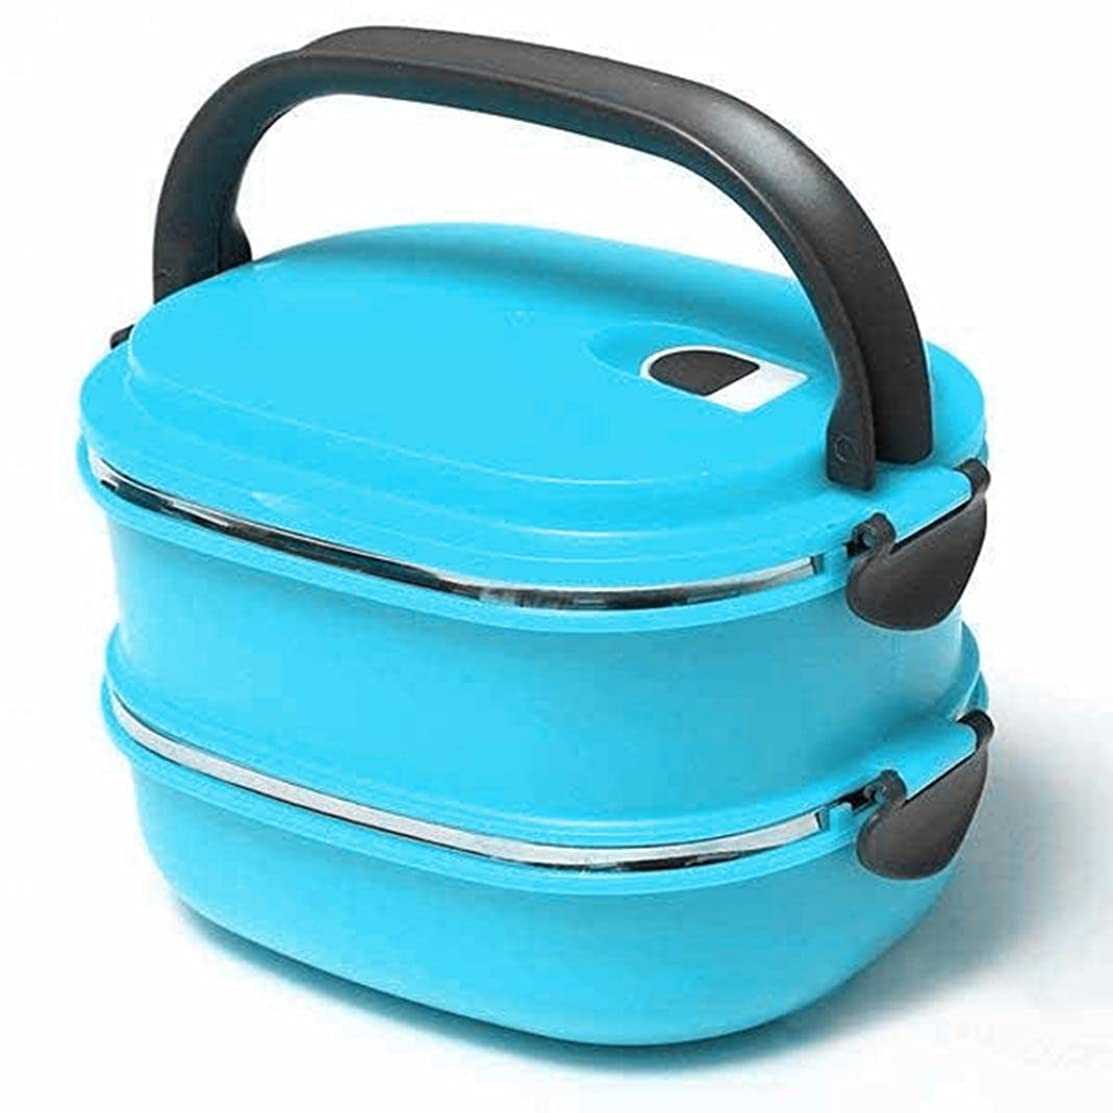 Stainless Steel Insulated Bento Lunch Box Leak-proof Food Container Storage Box for Adults and Kids size 2 Layer (Blue)